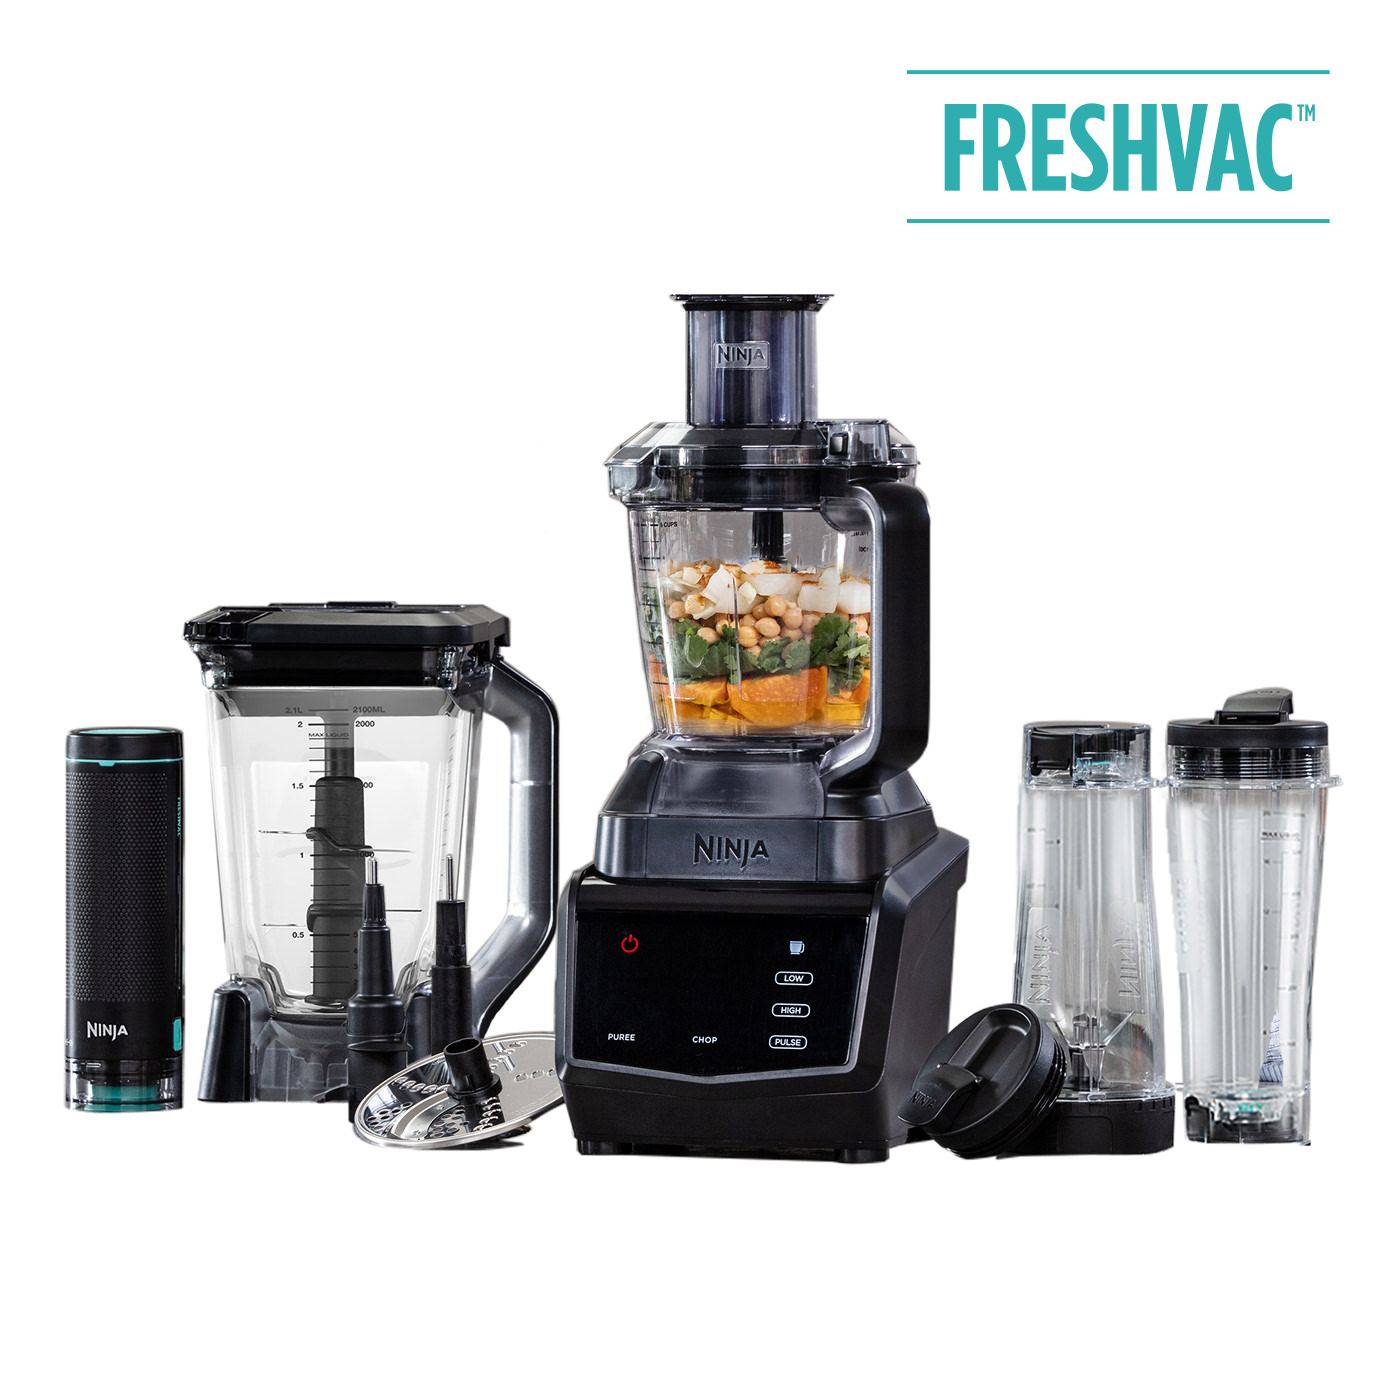 Ninja 1100W Food Processor, Blender & Smoothie Maker with FreshVac Technology CT670UKV